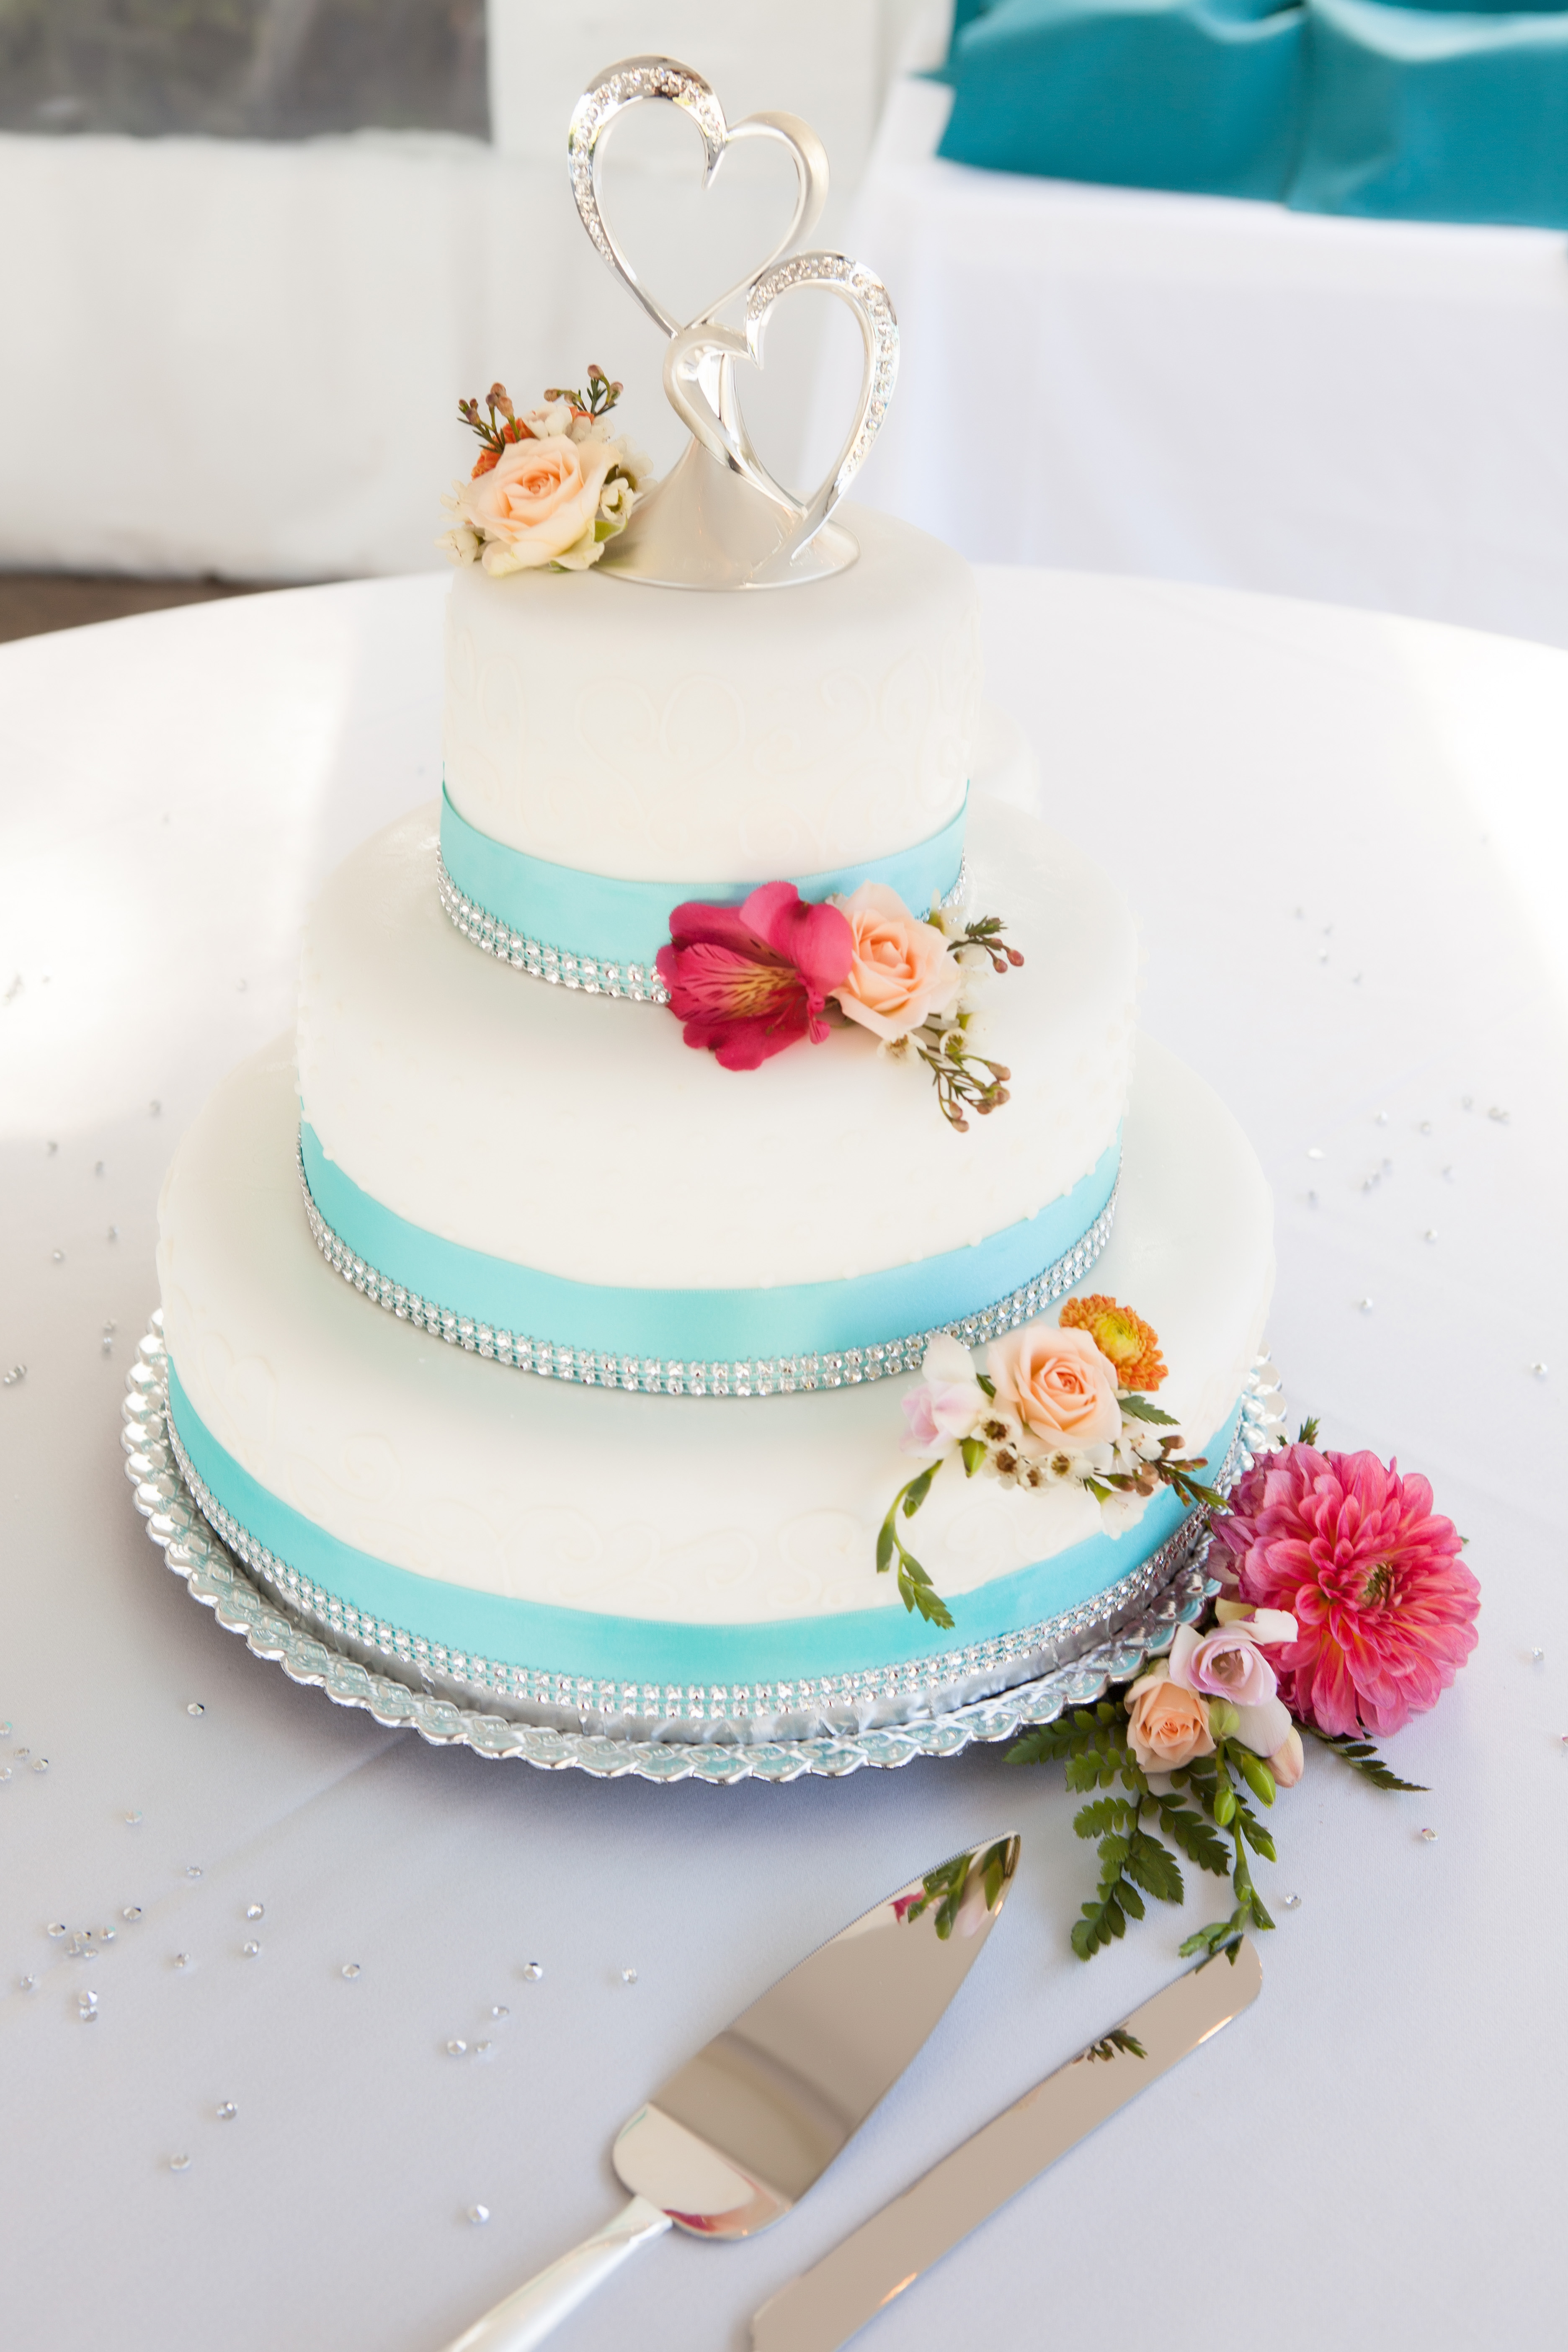 Cake Decorating Classes Central Coast Nsw